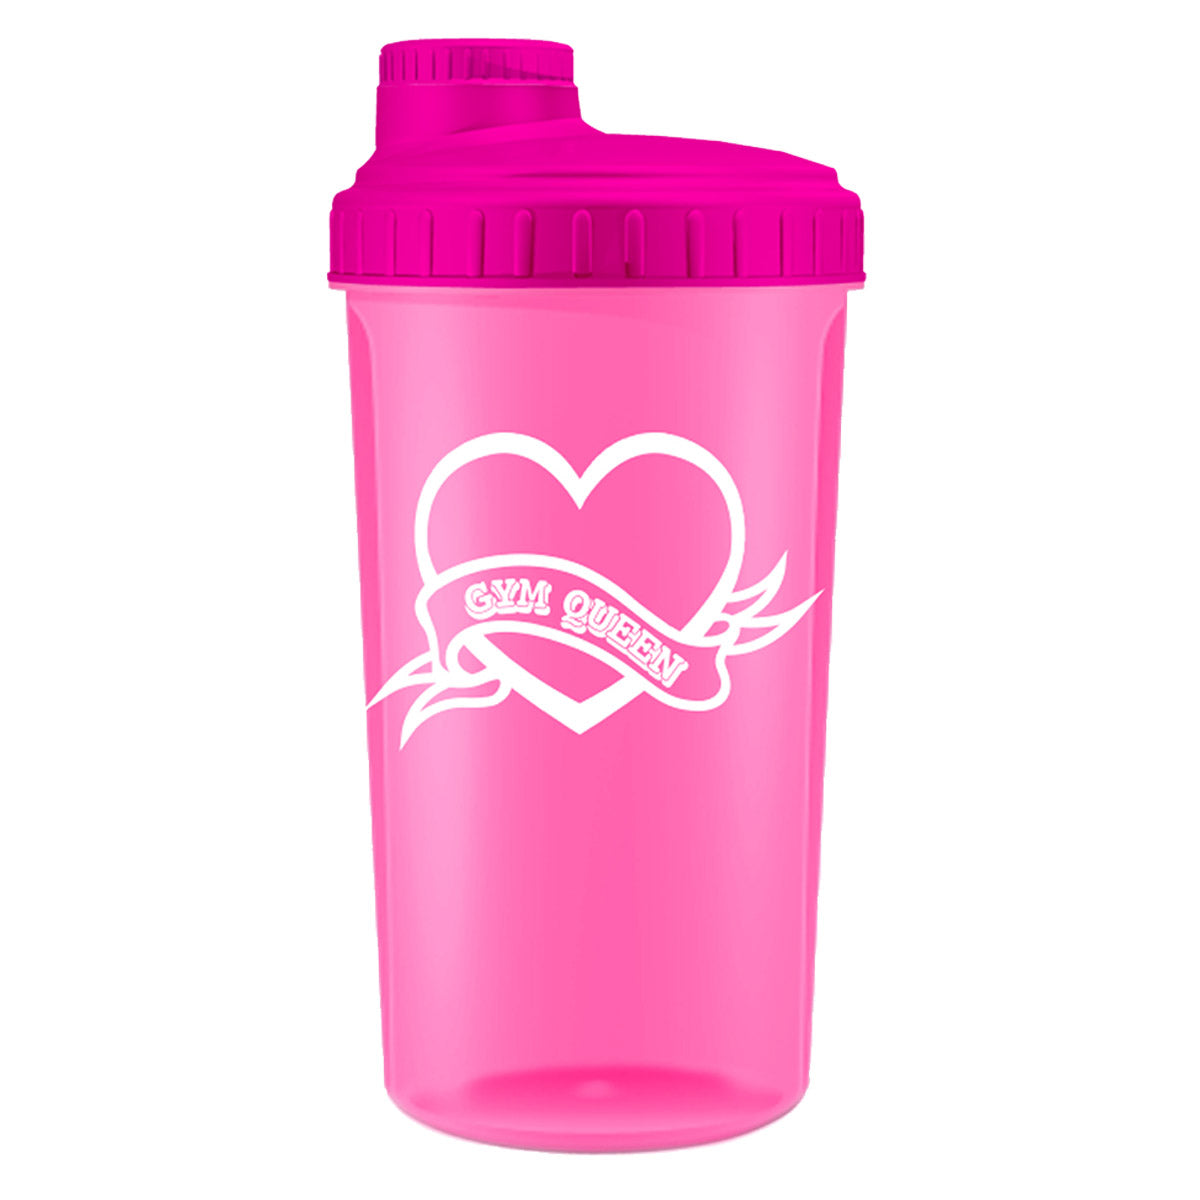 Gym Queen shaker 700ml